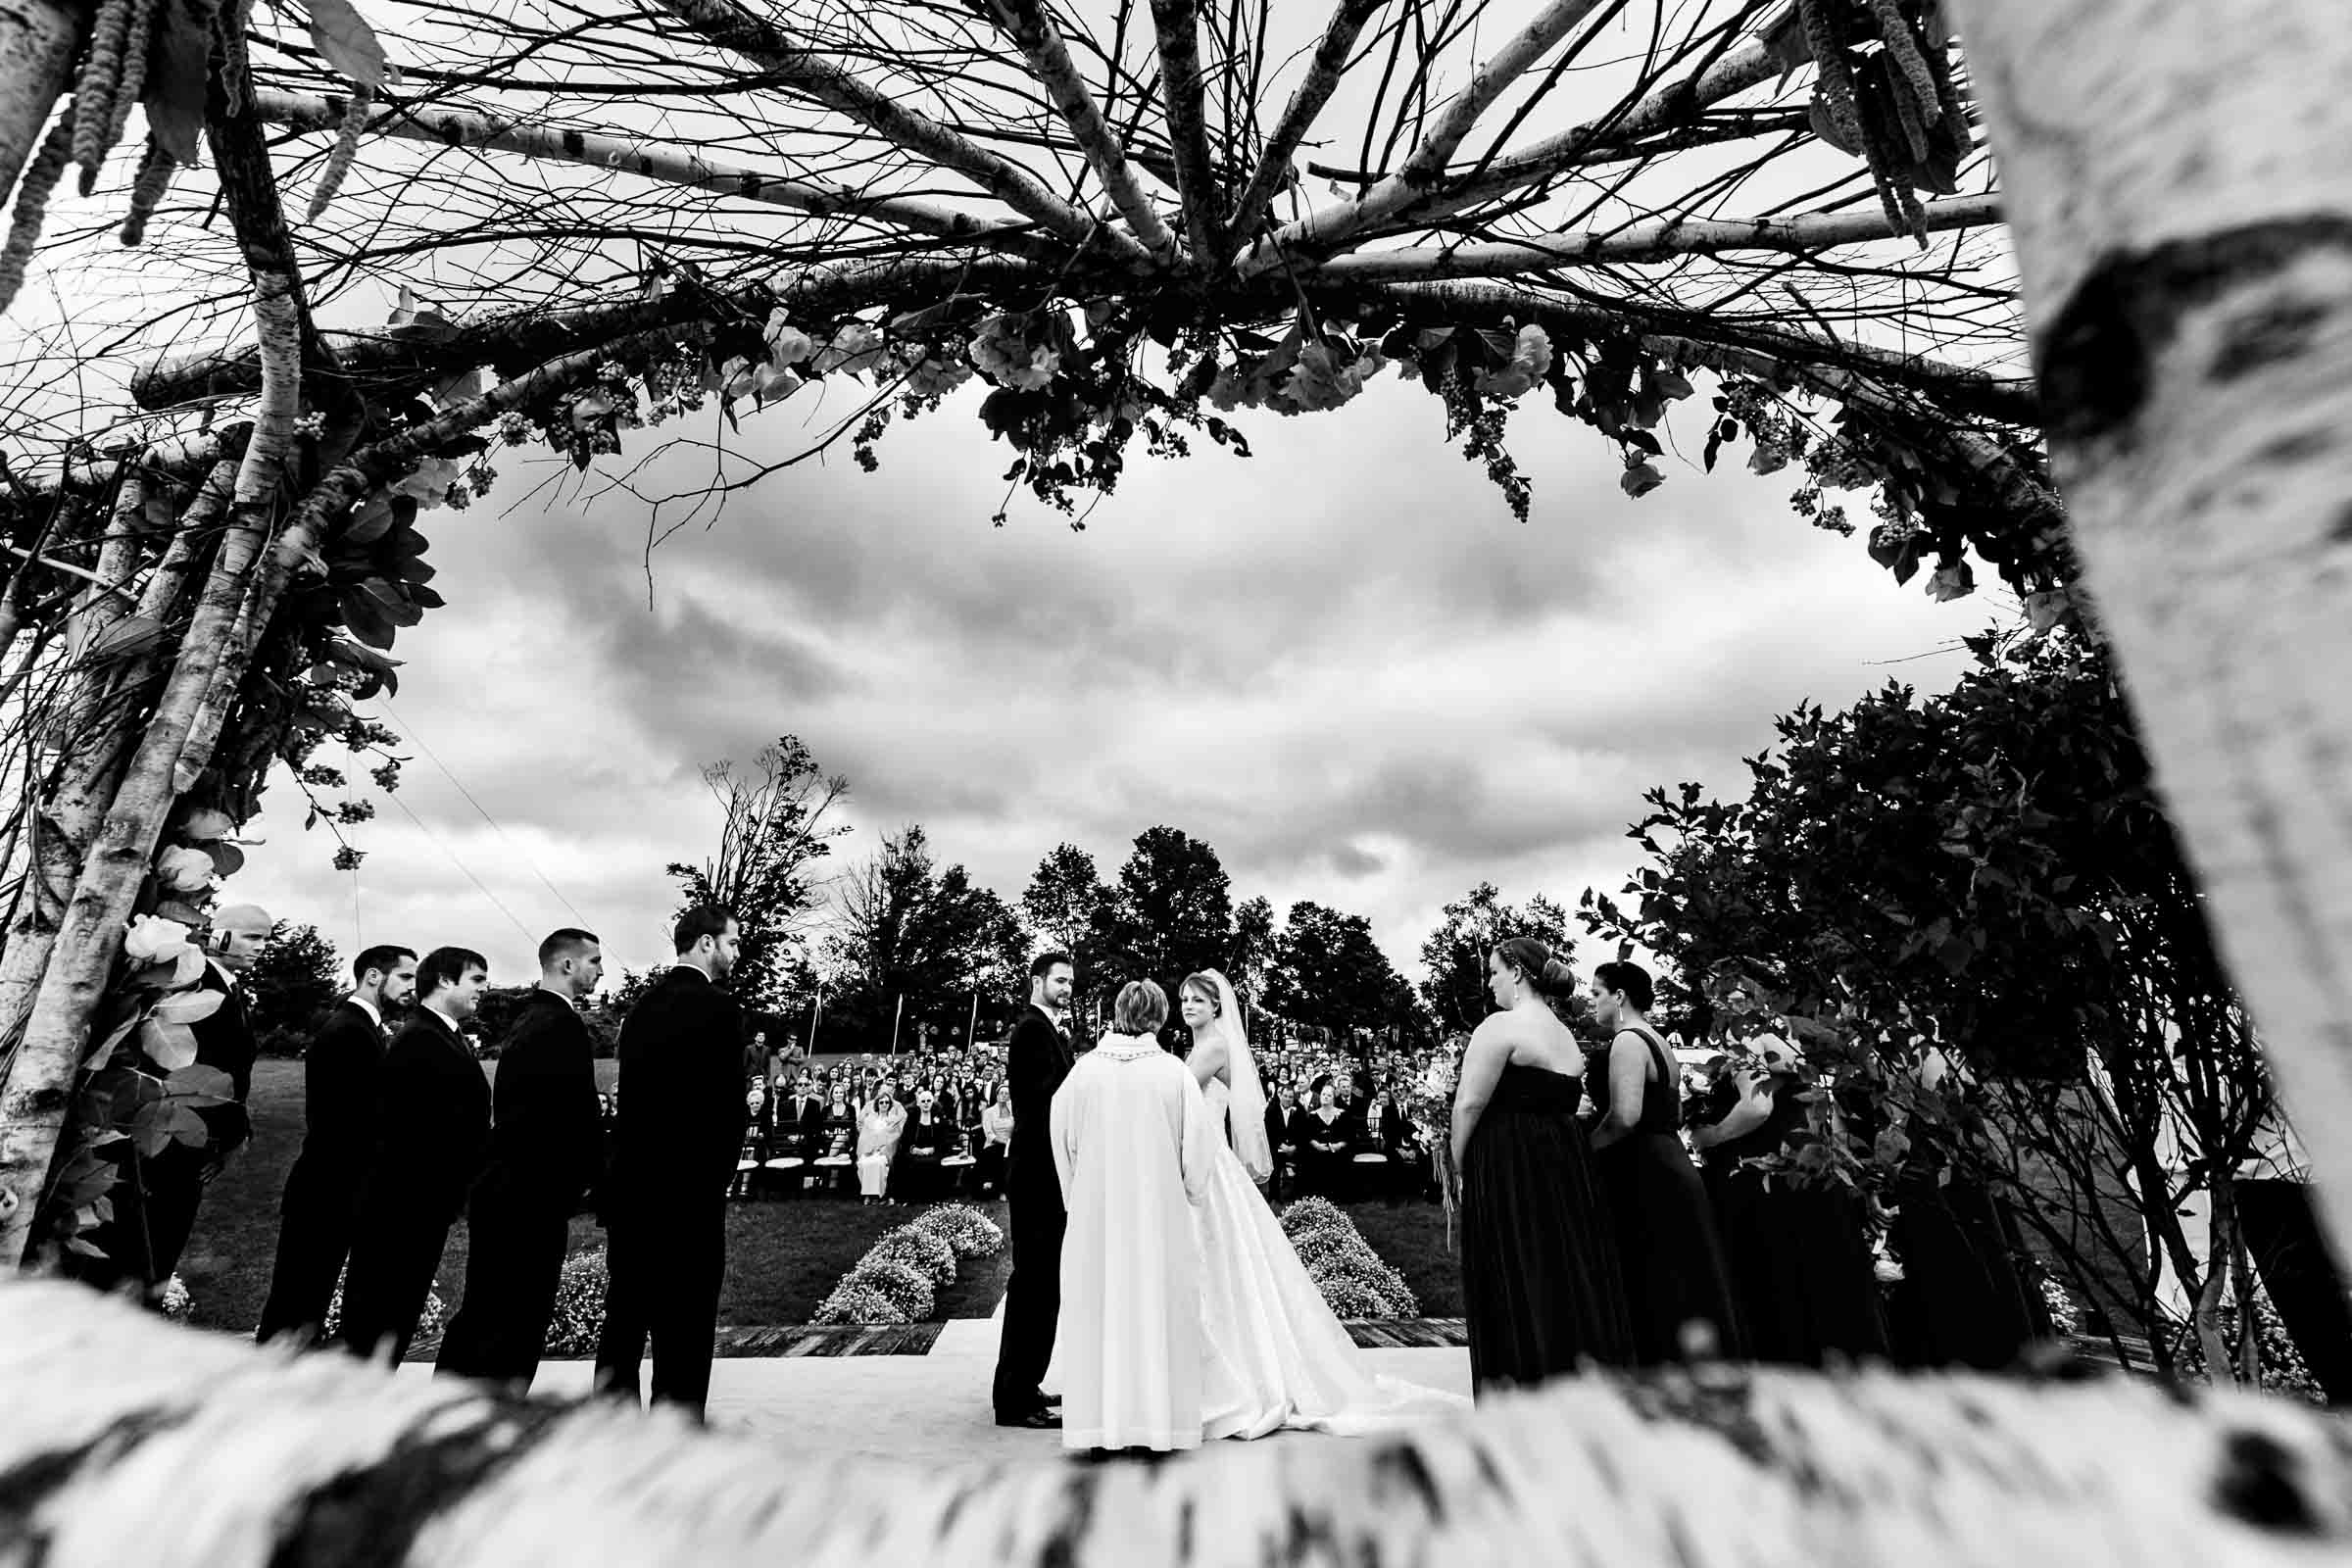 Wide angle view of the bride and groom and their bridal party during their Trapp Family Lodge wedding ceremony in Stowe, Vermont.